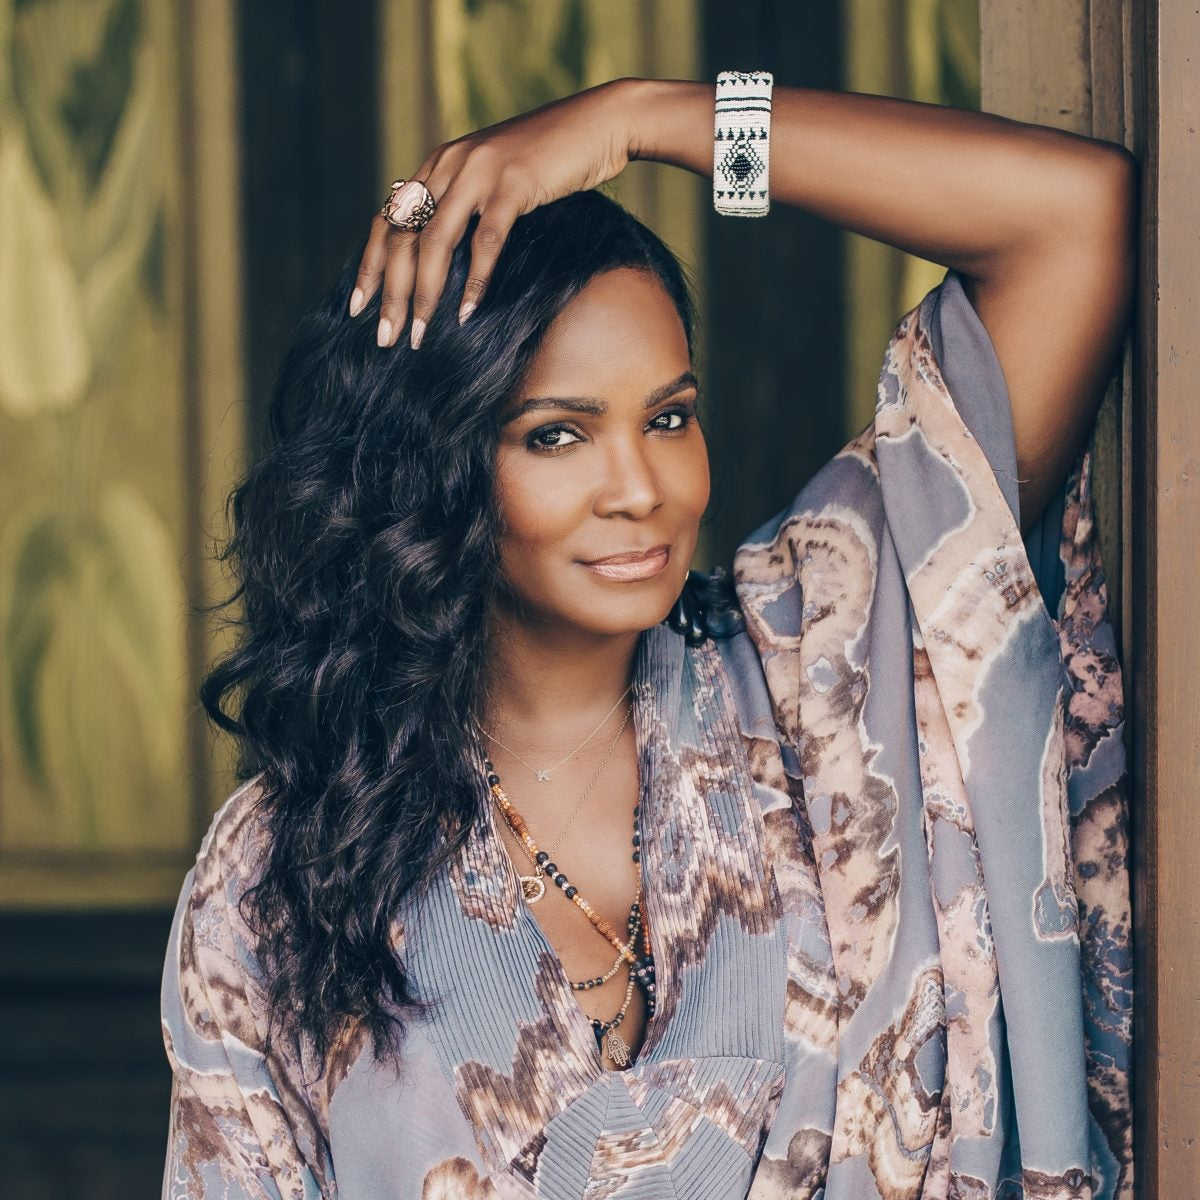 How Tameka Foster Raymond Found Healing, Forgiveness and Peace After The Heartbreaking Loss Of Her Son